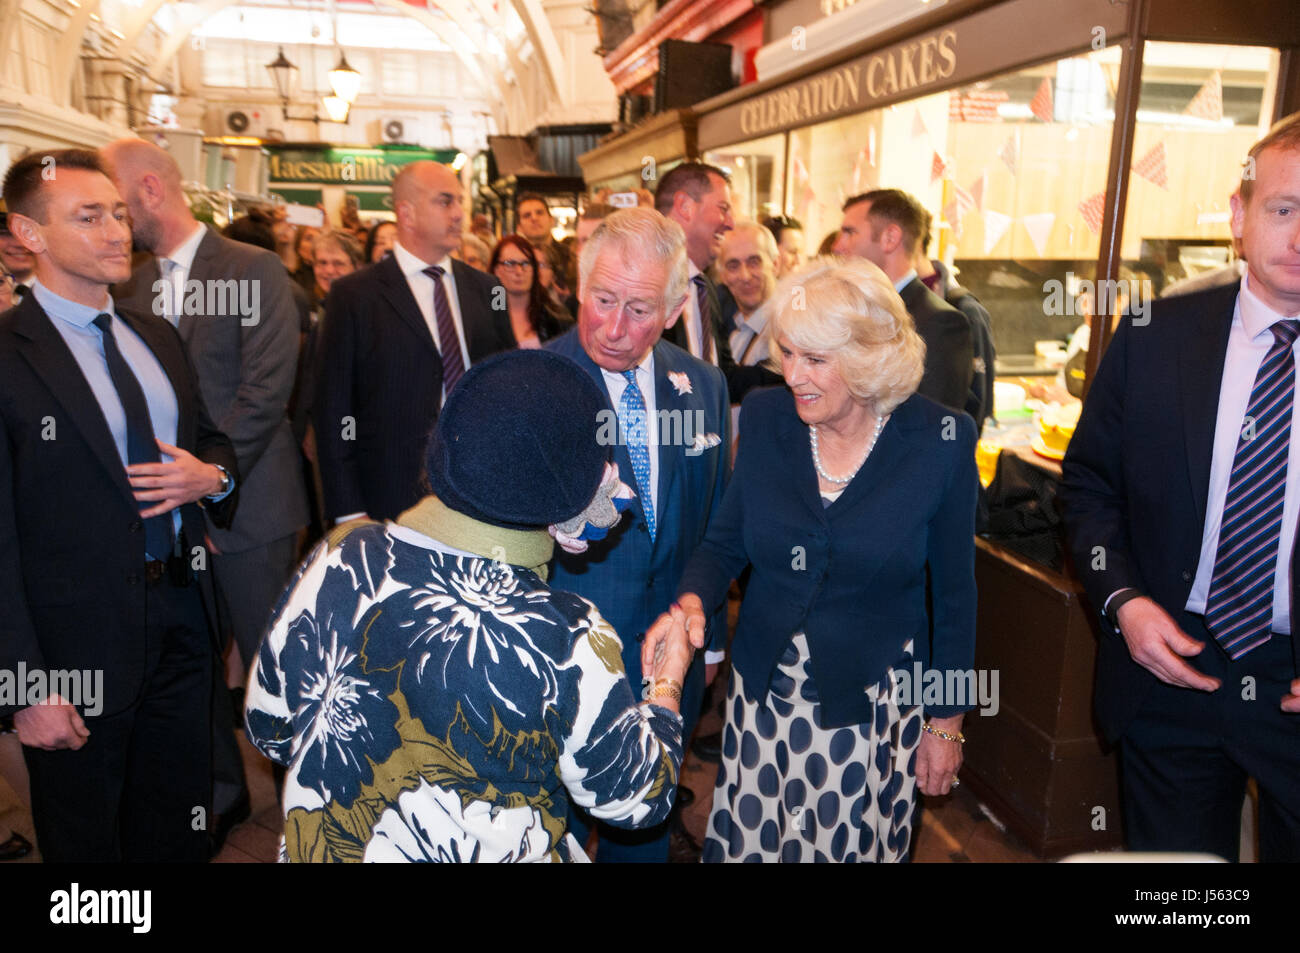 oxford-oxfordshire-uk-16th-may-2017-prince-charles-and-camilla-visiting-J563C9.jpg